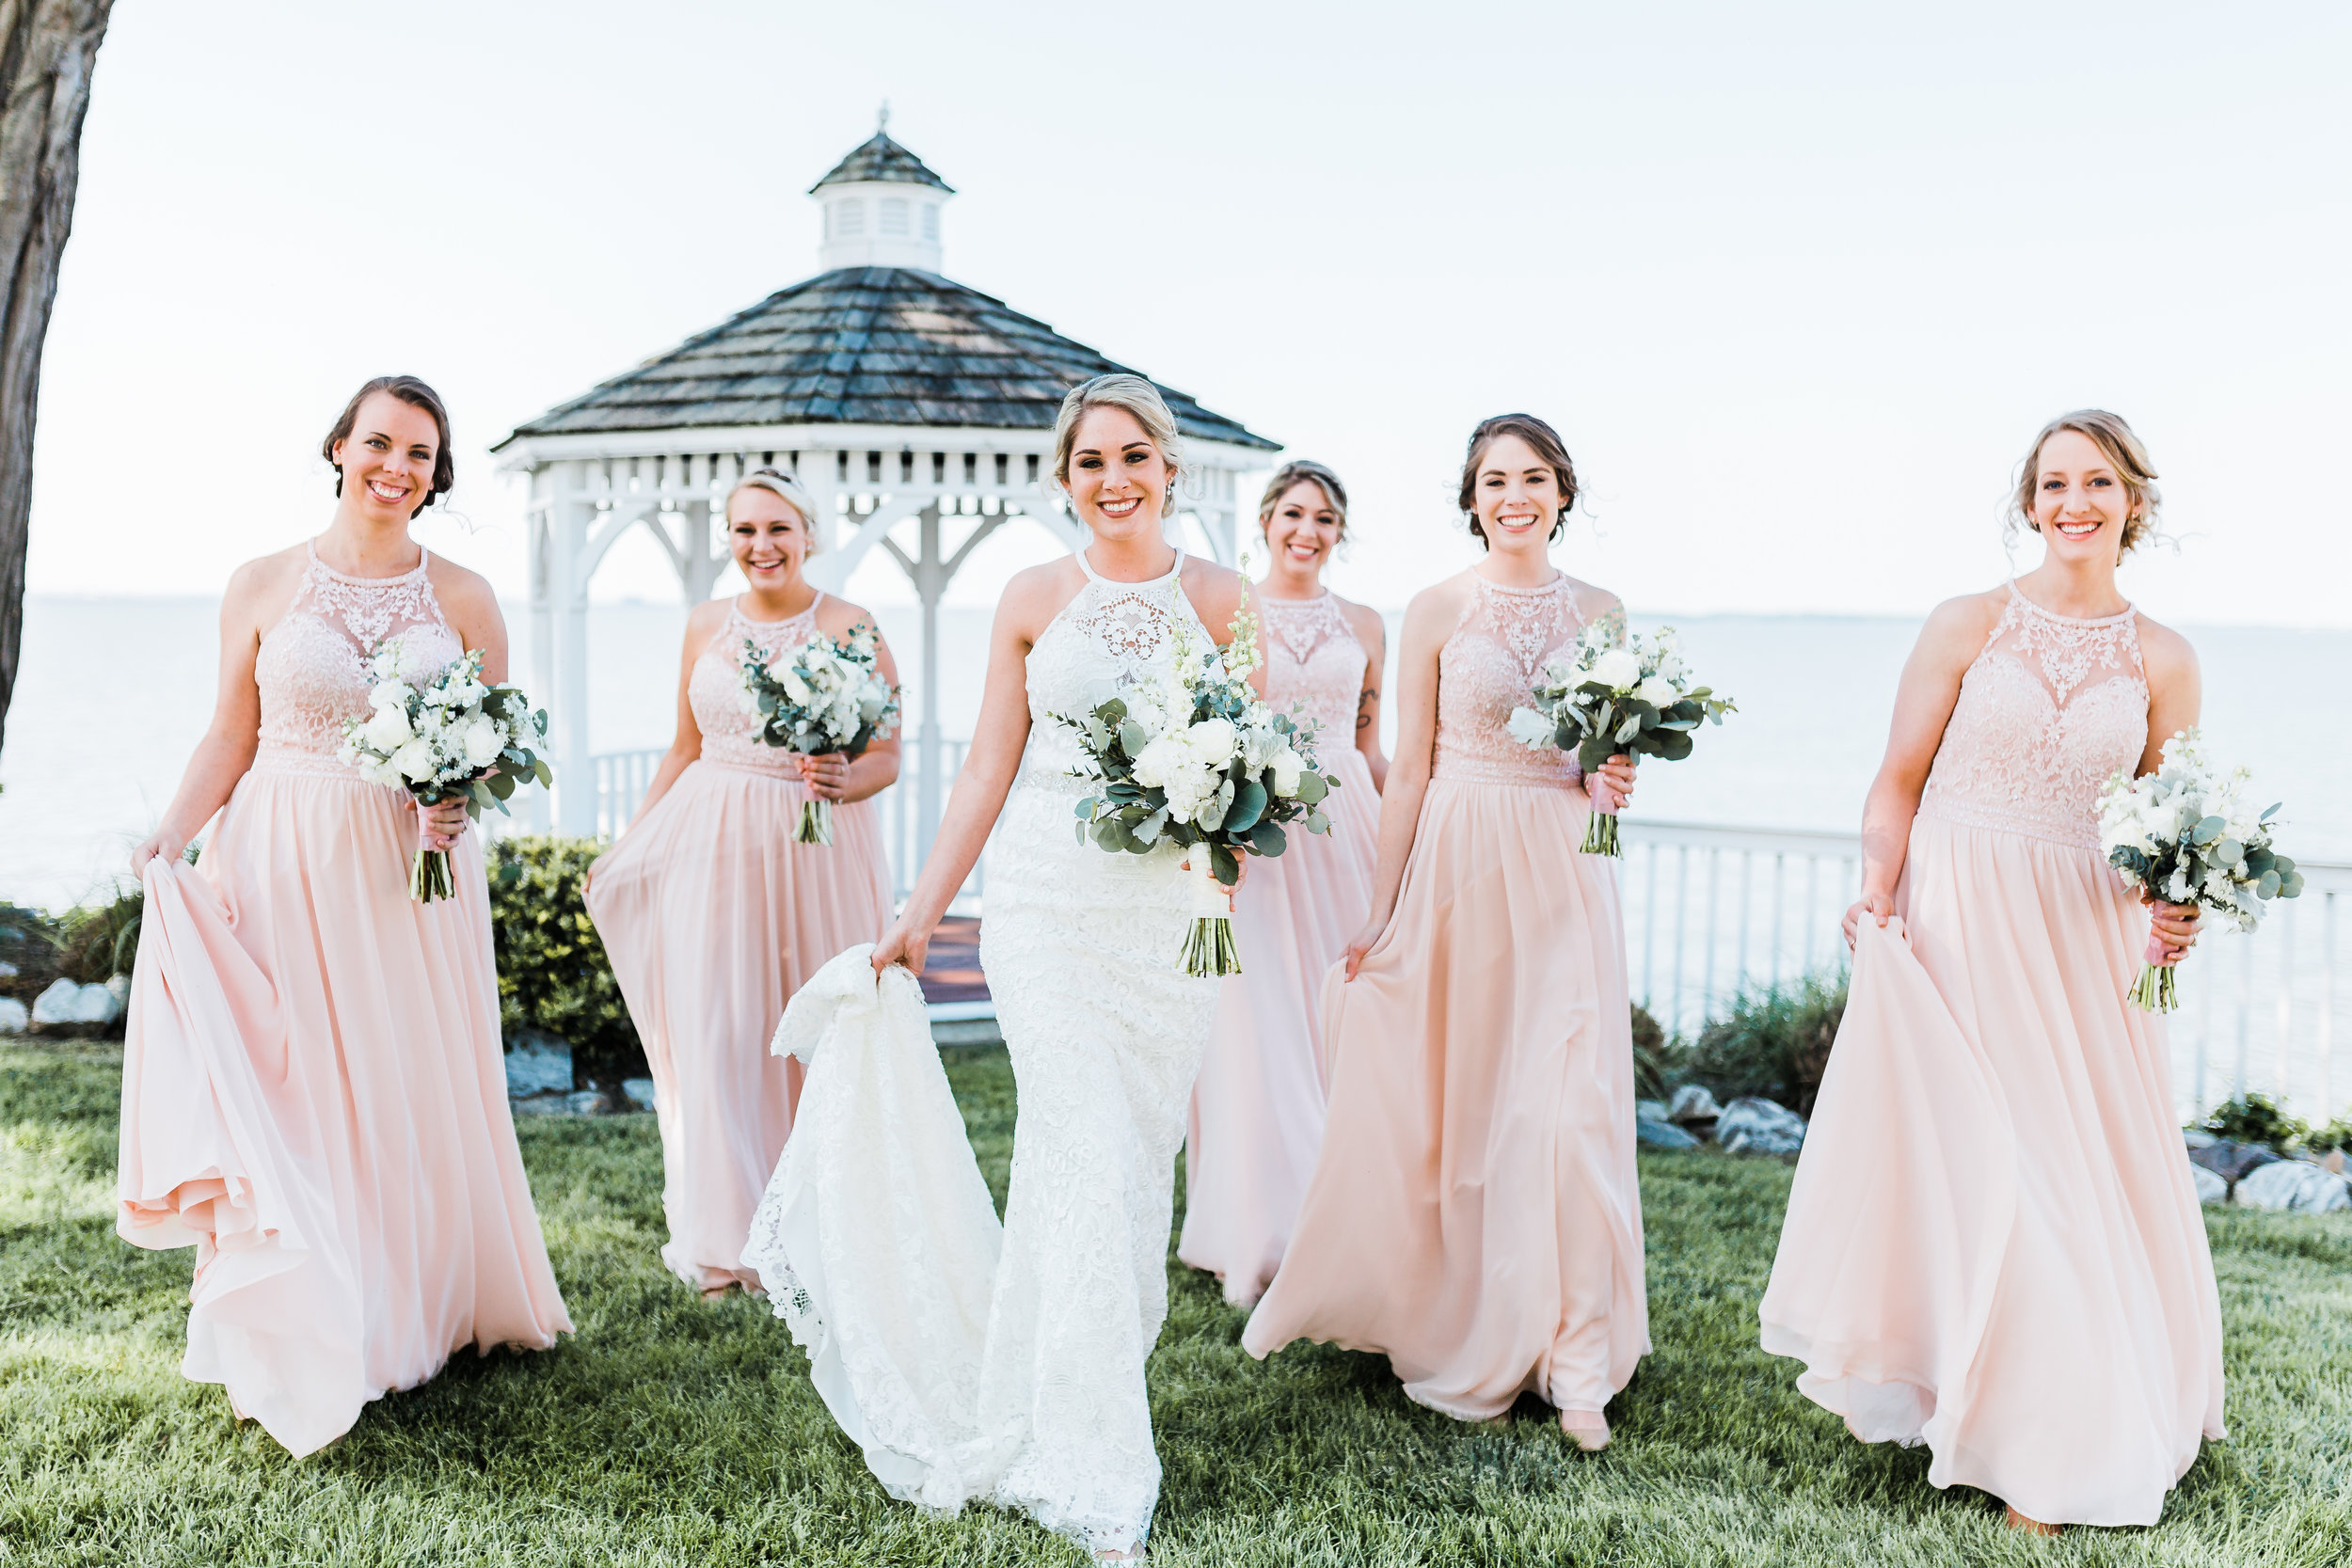 bride walking and laughing with her bridesmaids in modern lace high neck dresses - maryland wedding photographer - bayside wedding